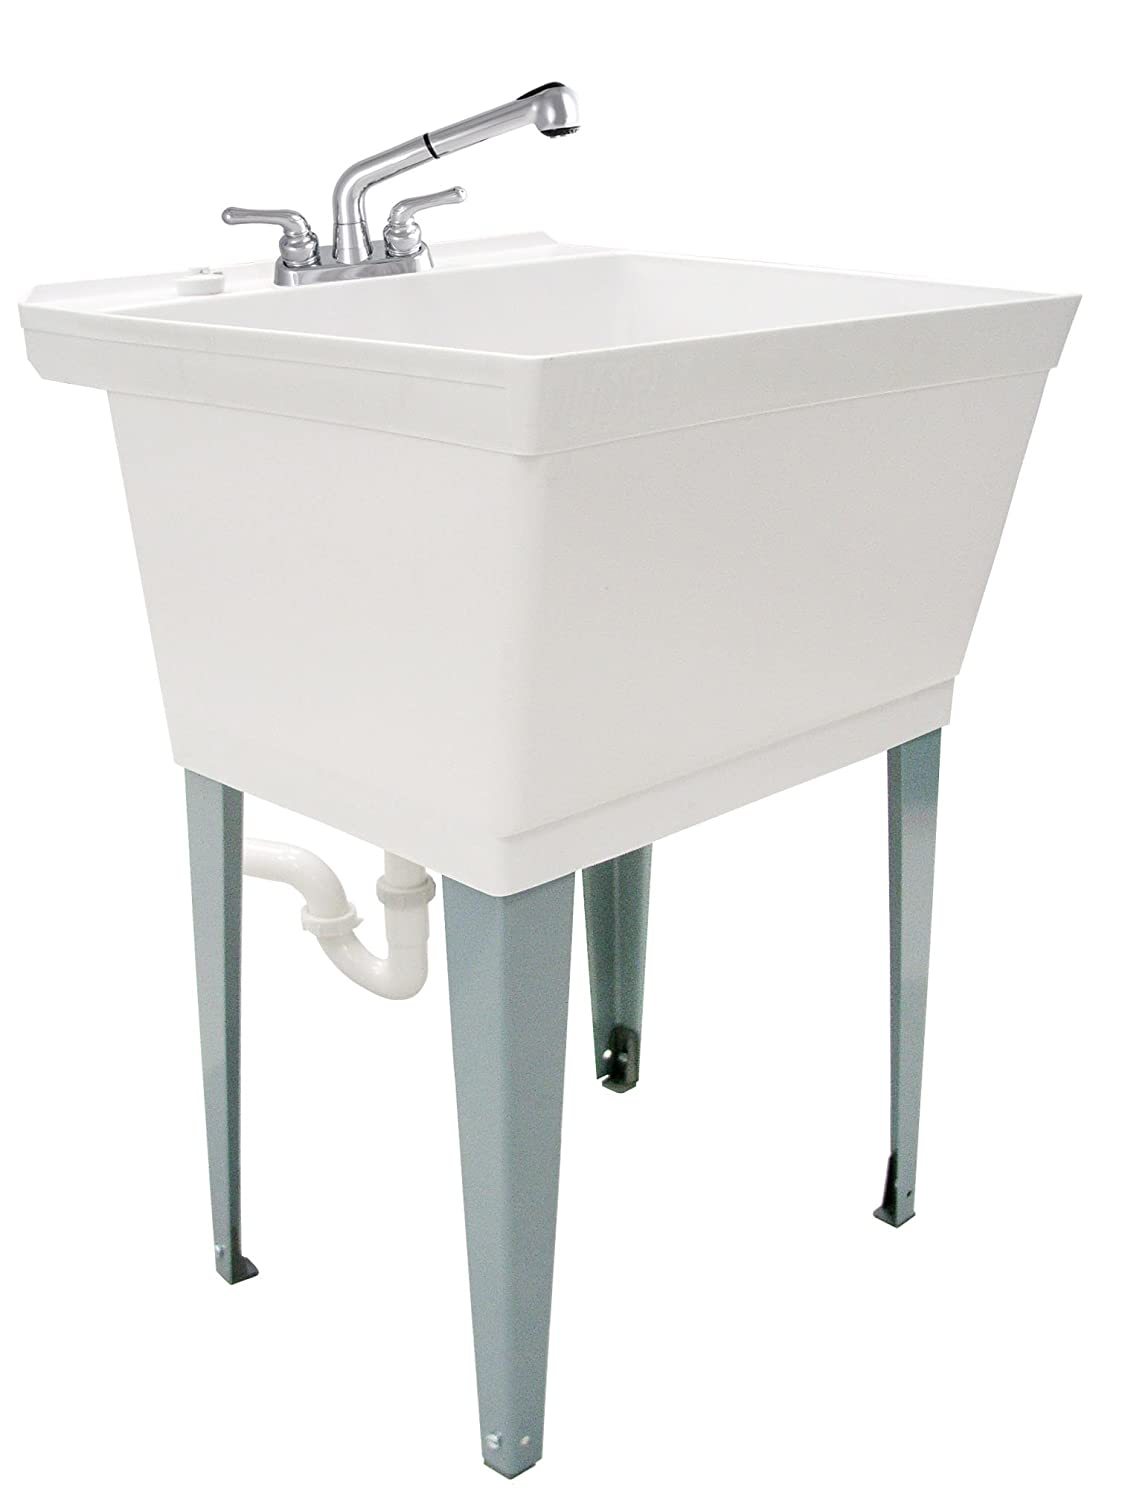 LDR Industries 040 6000 Complete 19 gal Laundry Utility Tub with Pull Out Faucet